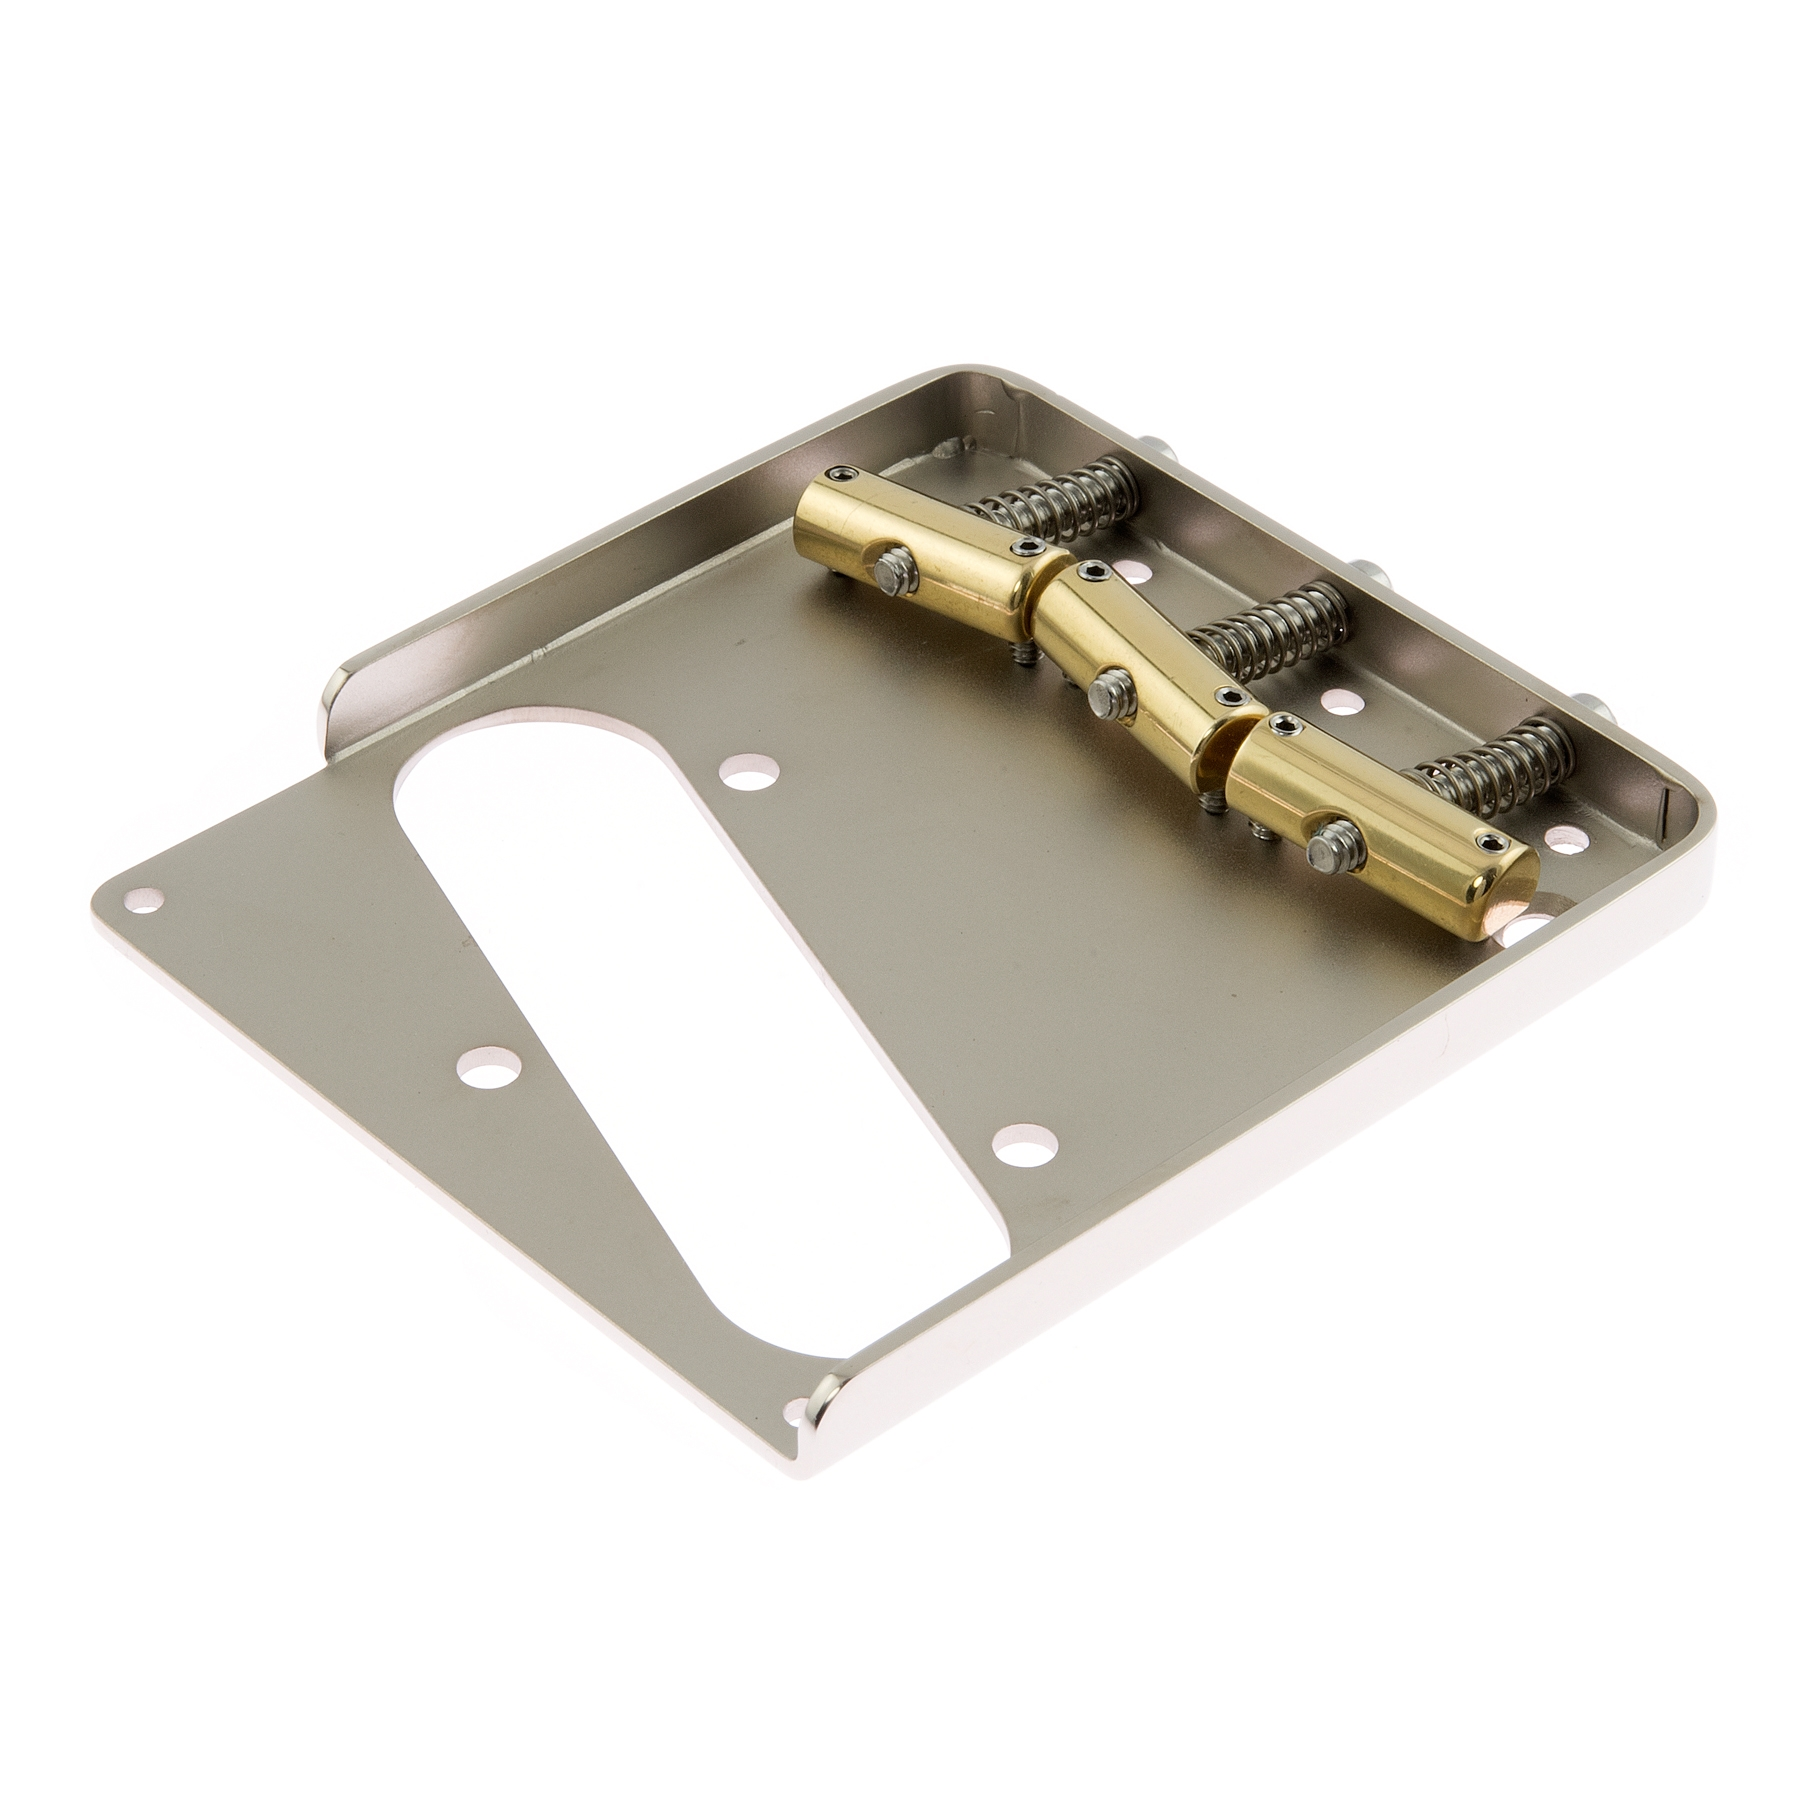 CALLAHAM TELE BRIDGE SLANT COMPENSATED BRASS CA22002